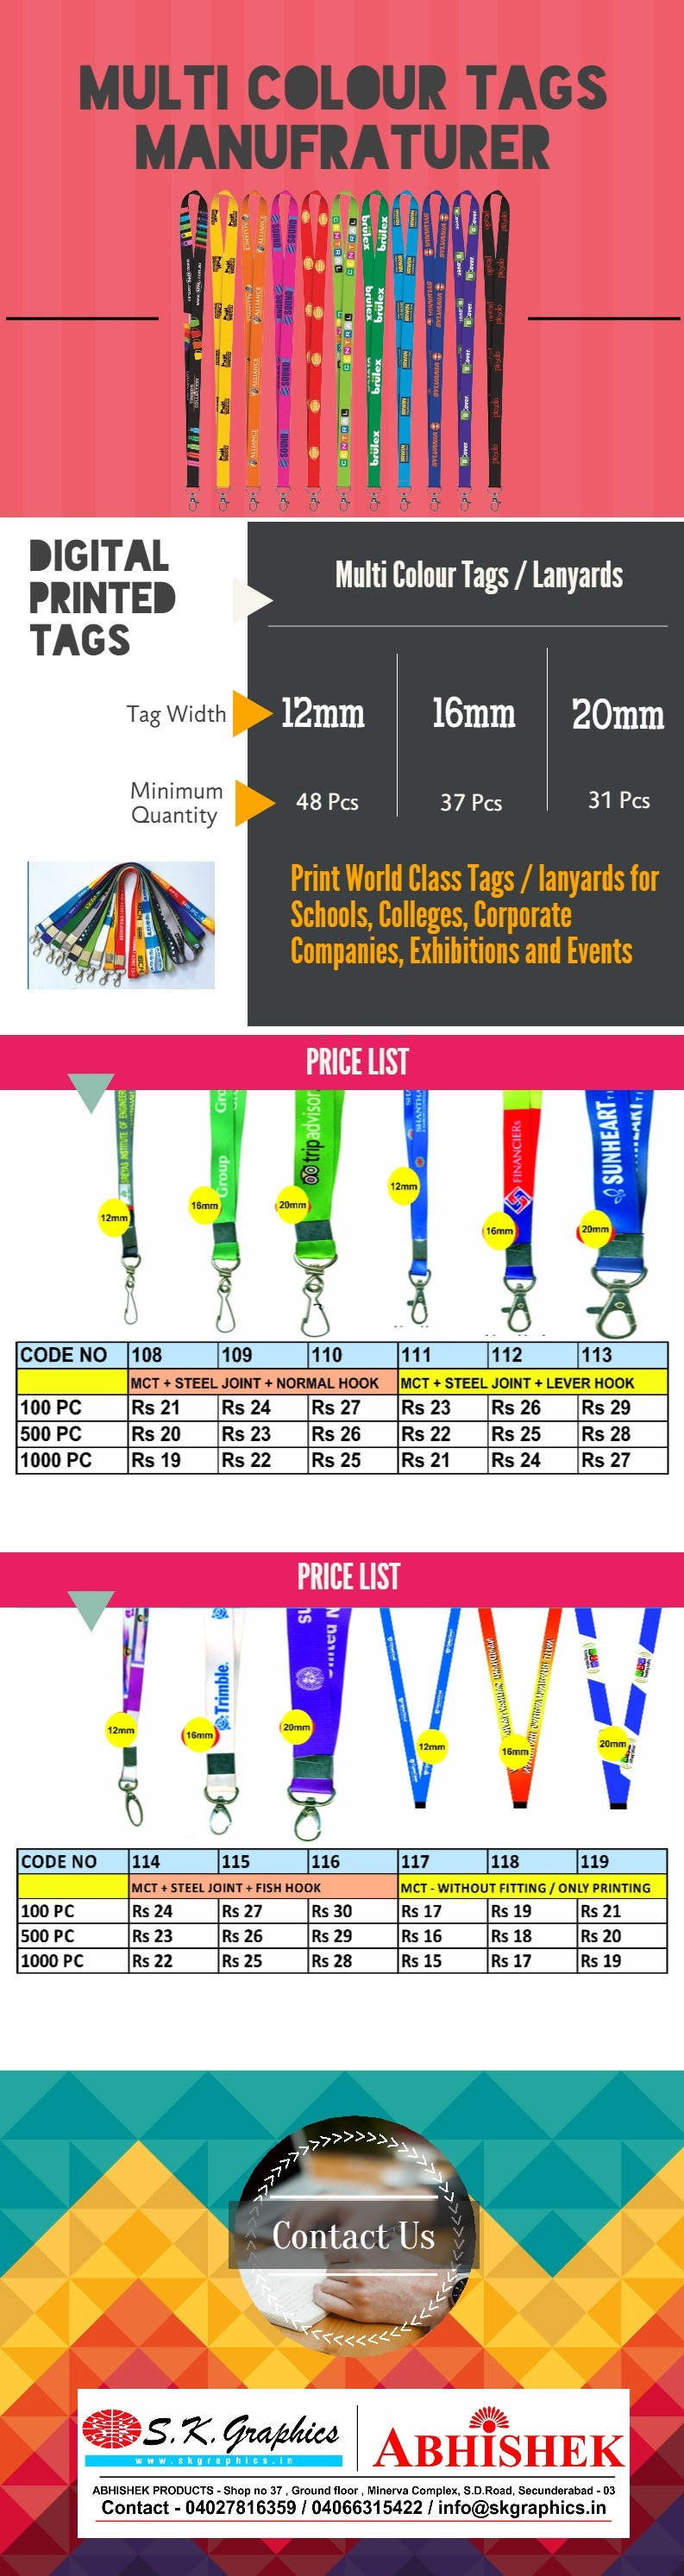 multi colour printed digital tags and lanyard manufacturer